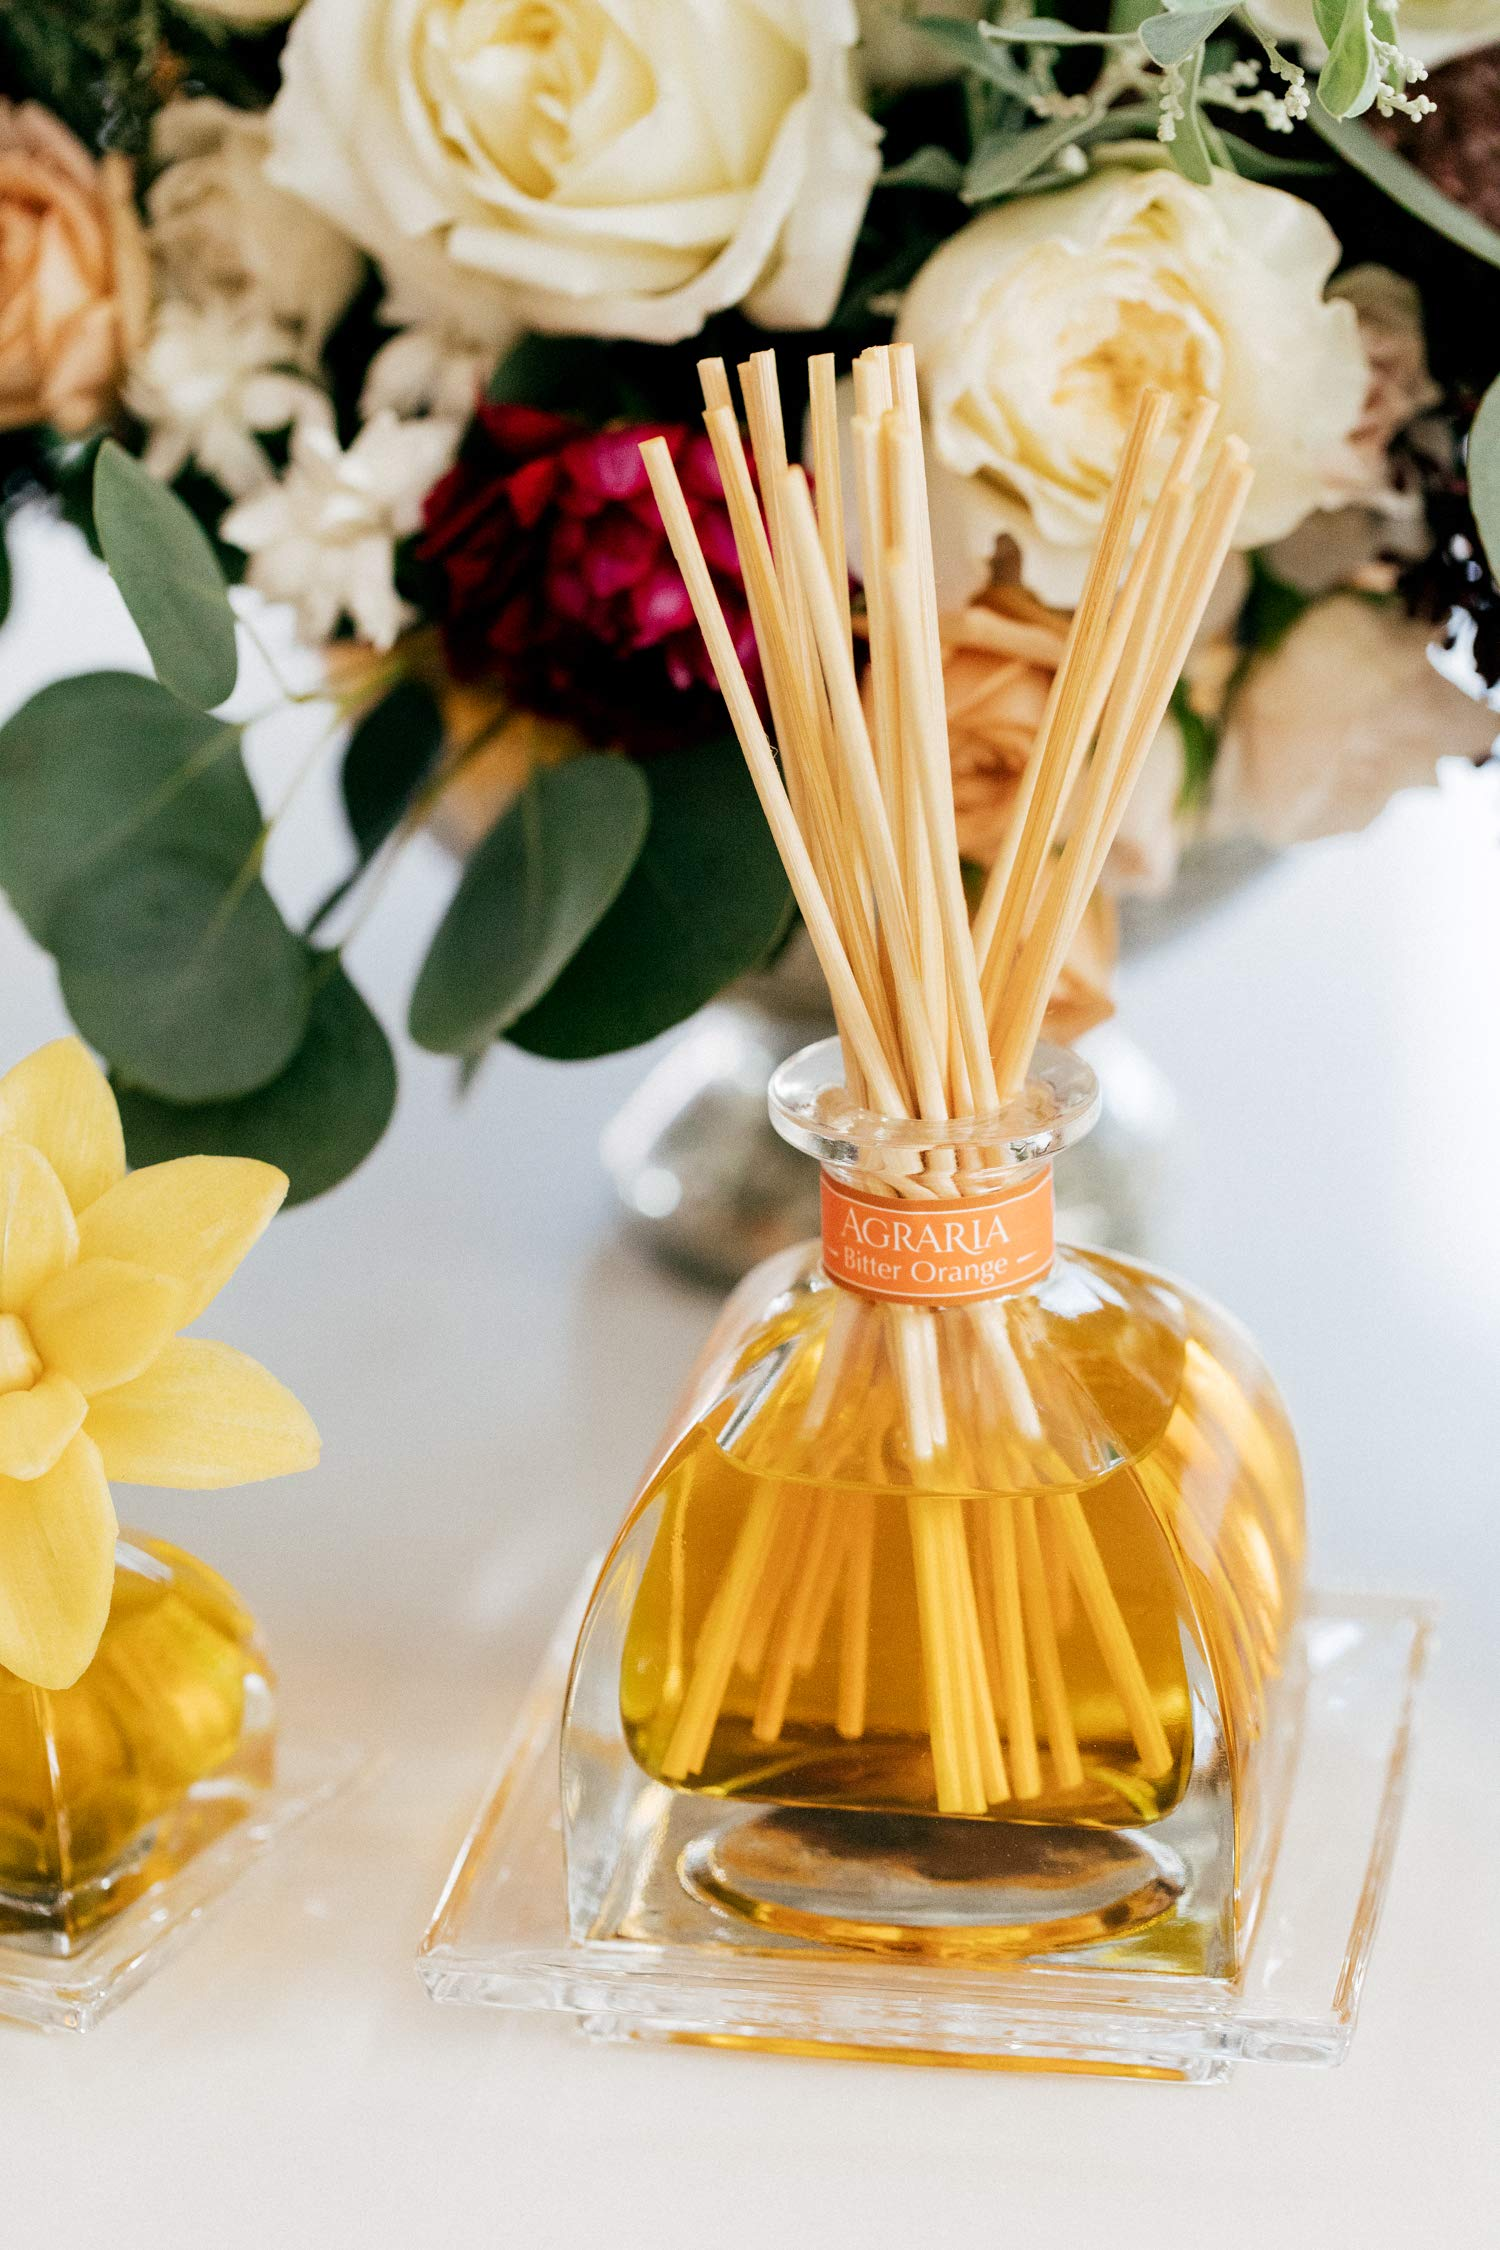 AGRARIA AirEssence Luxury Diffuser Bitter Orange Scent Includes 3 Sola Flowers and 20 Reeds 7.4 Ounces